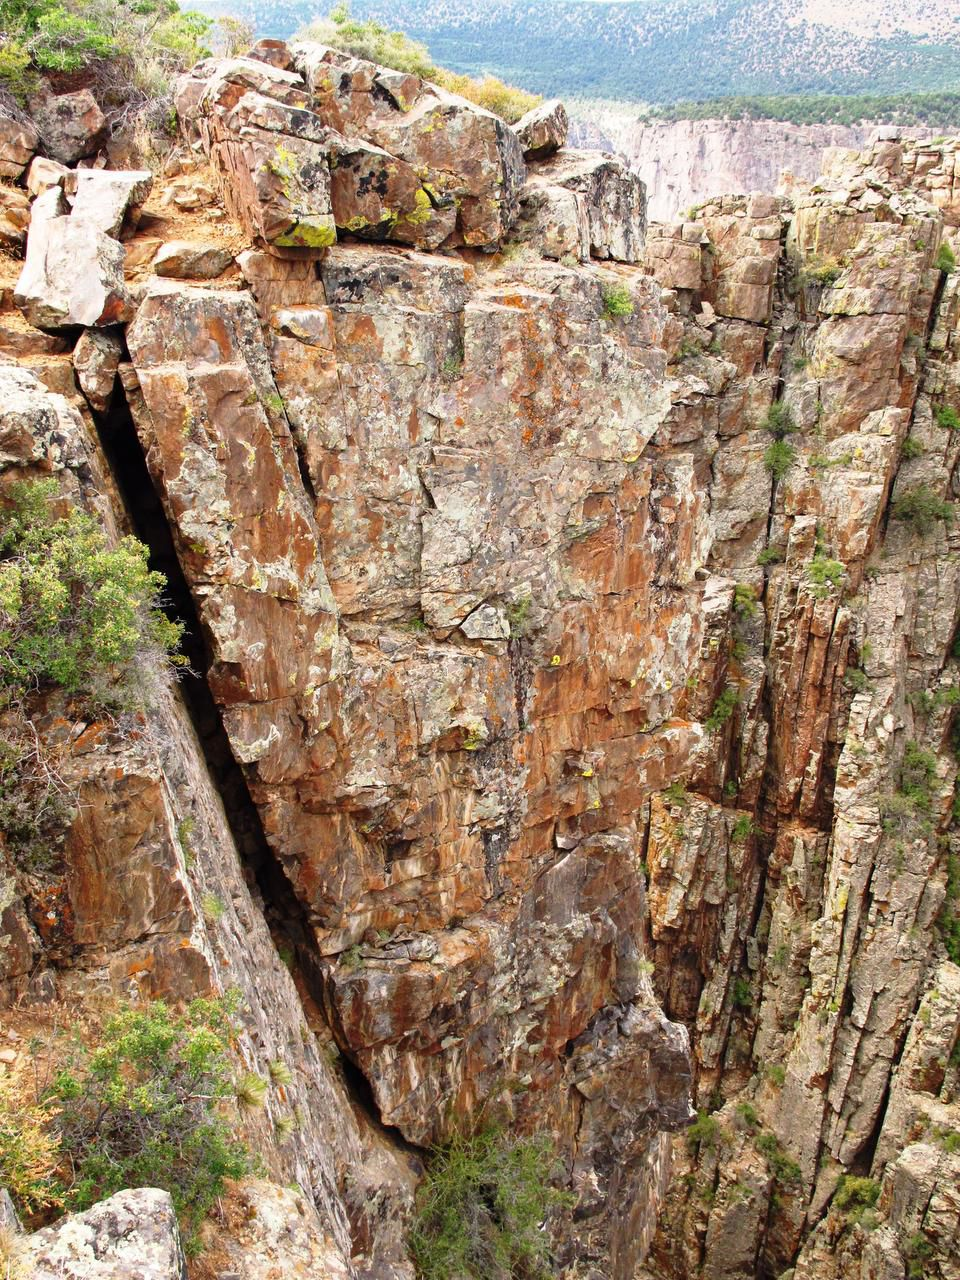 Fissures in the rock walls show the effects of wind and weather over thousands of years.